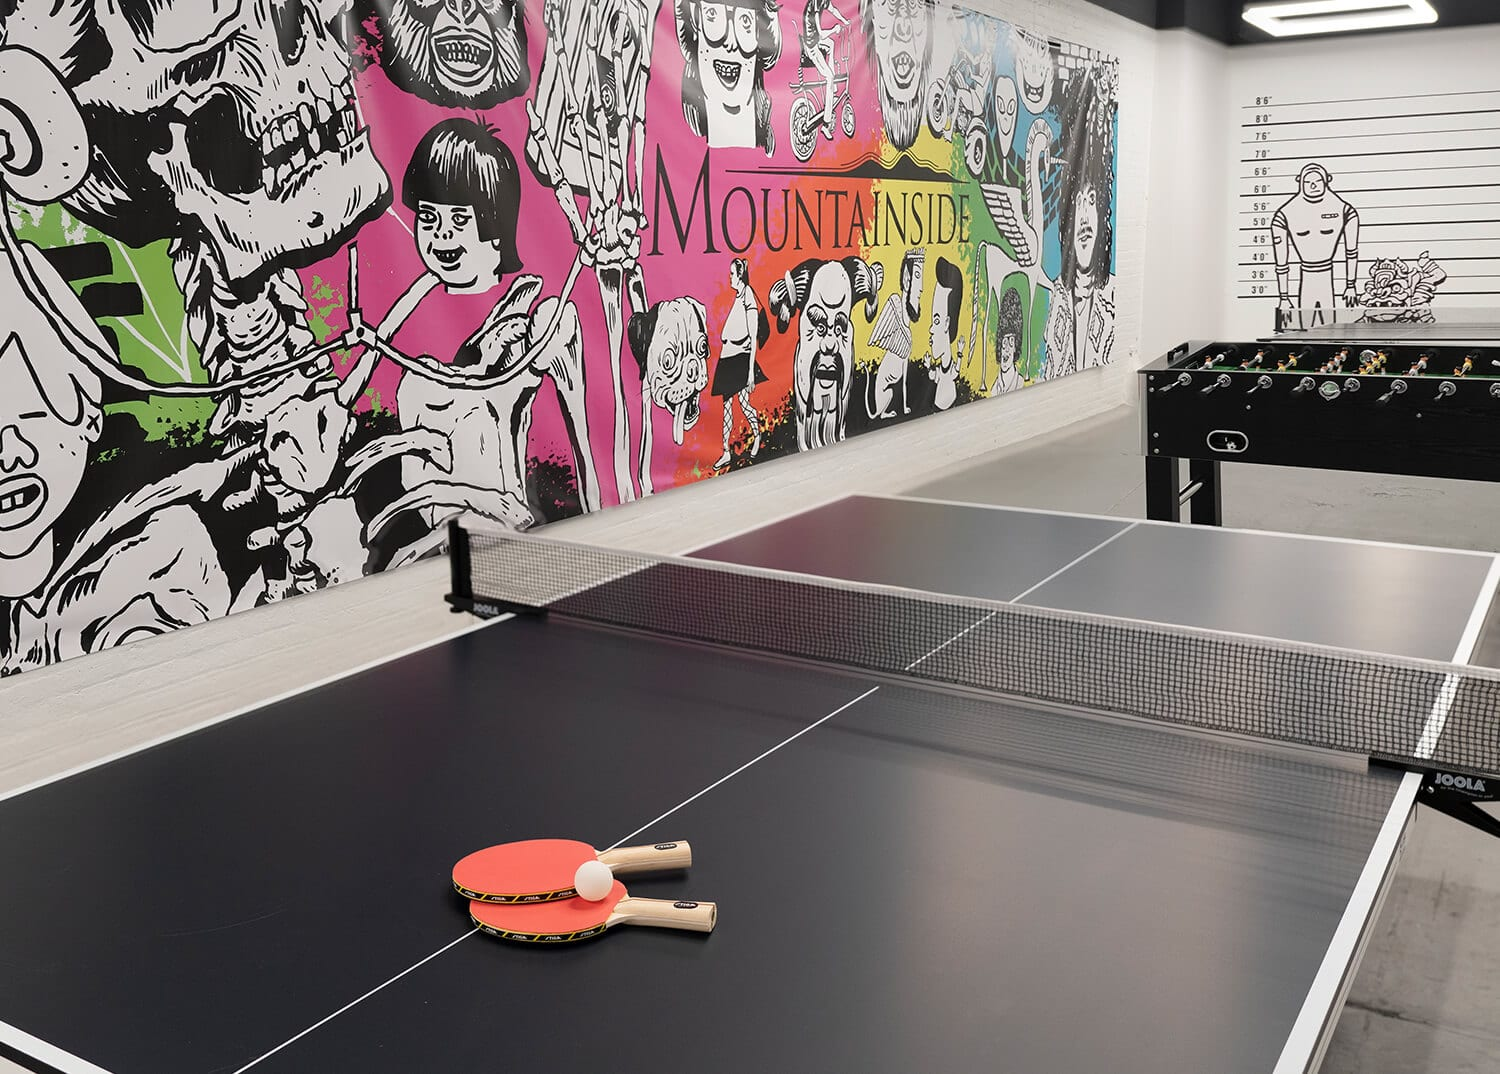 A game room with ping pong and other games with bright wall mural in NYC.